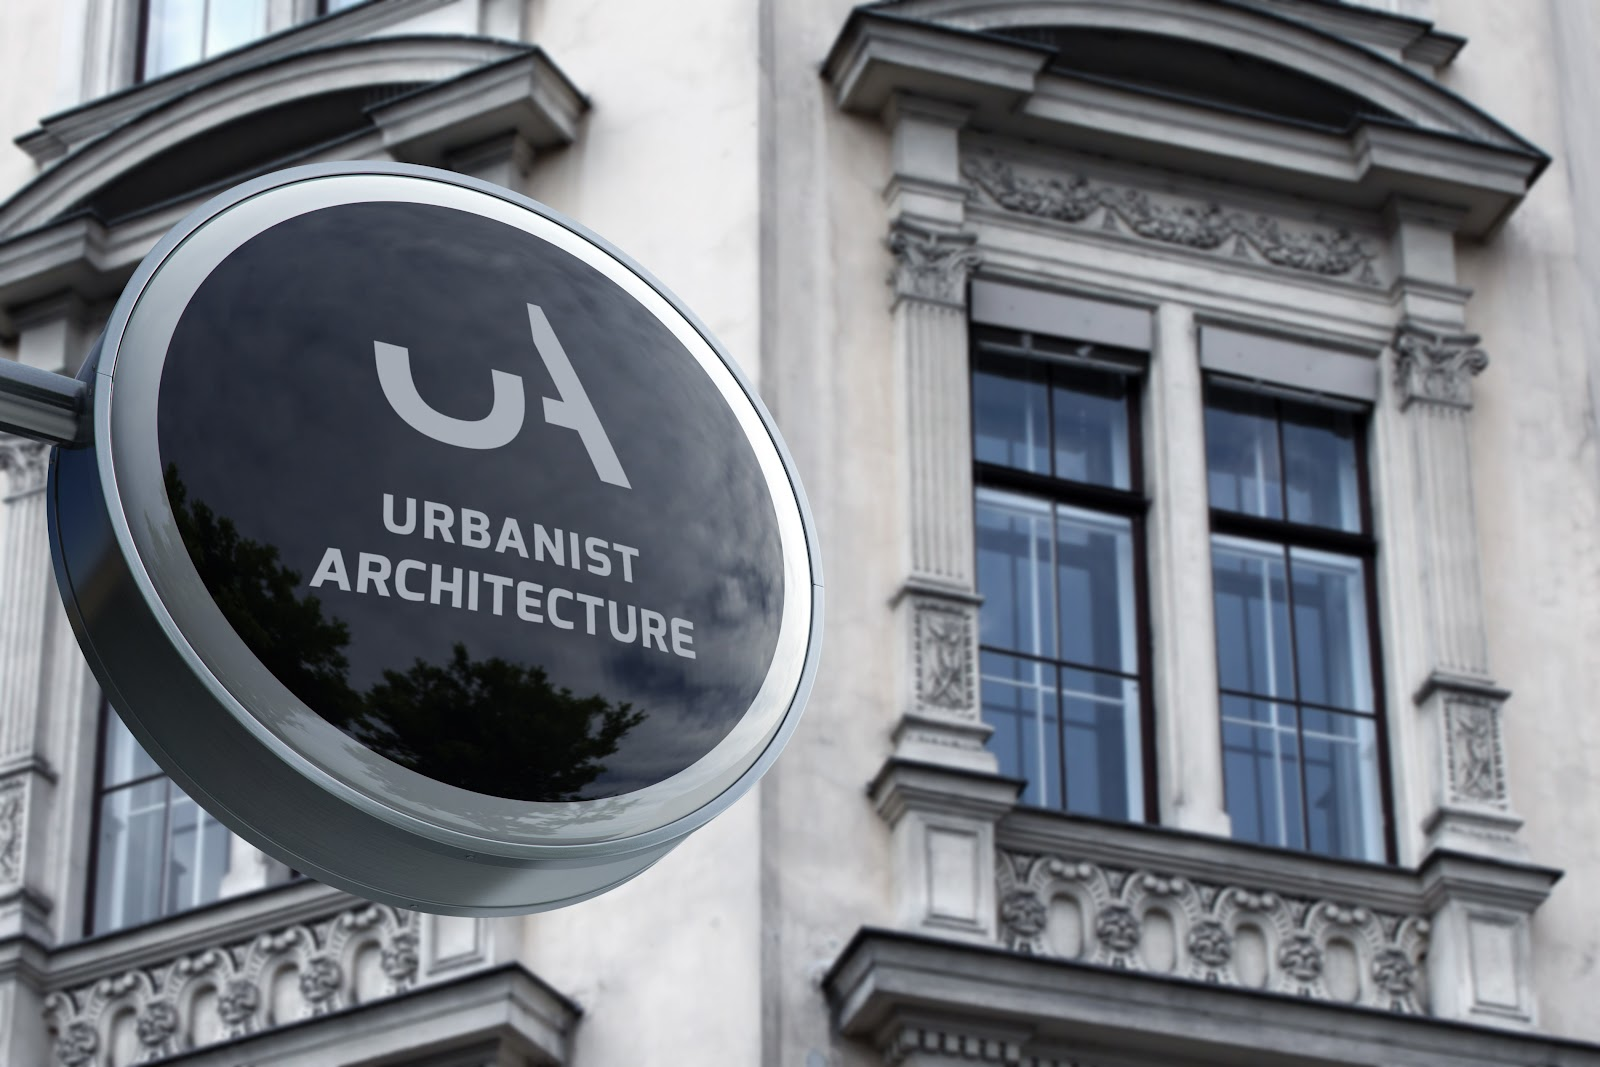 urbanist architecture interview if you have any questions about planning applications you can contact urbanist architecture and mr ufuk bahar by clicking here